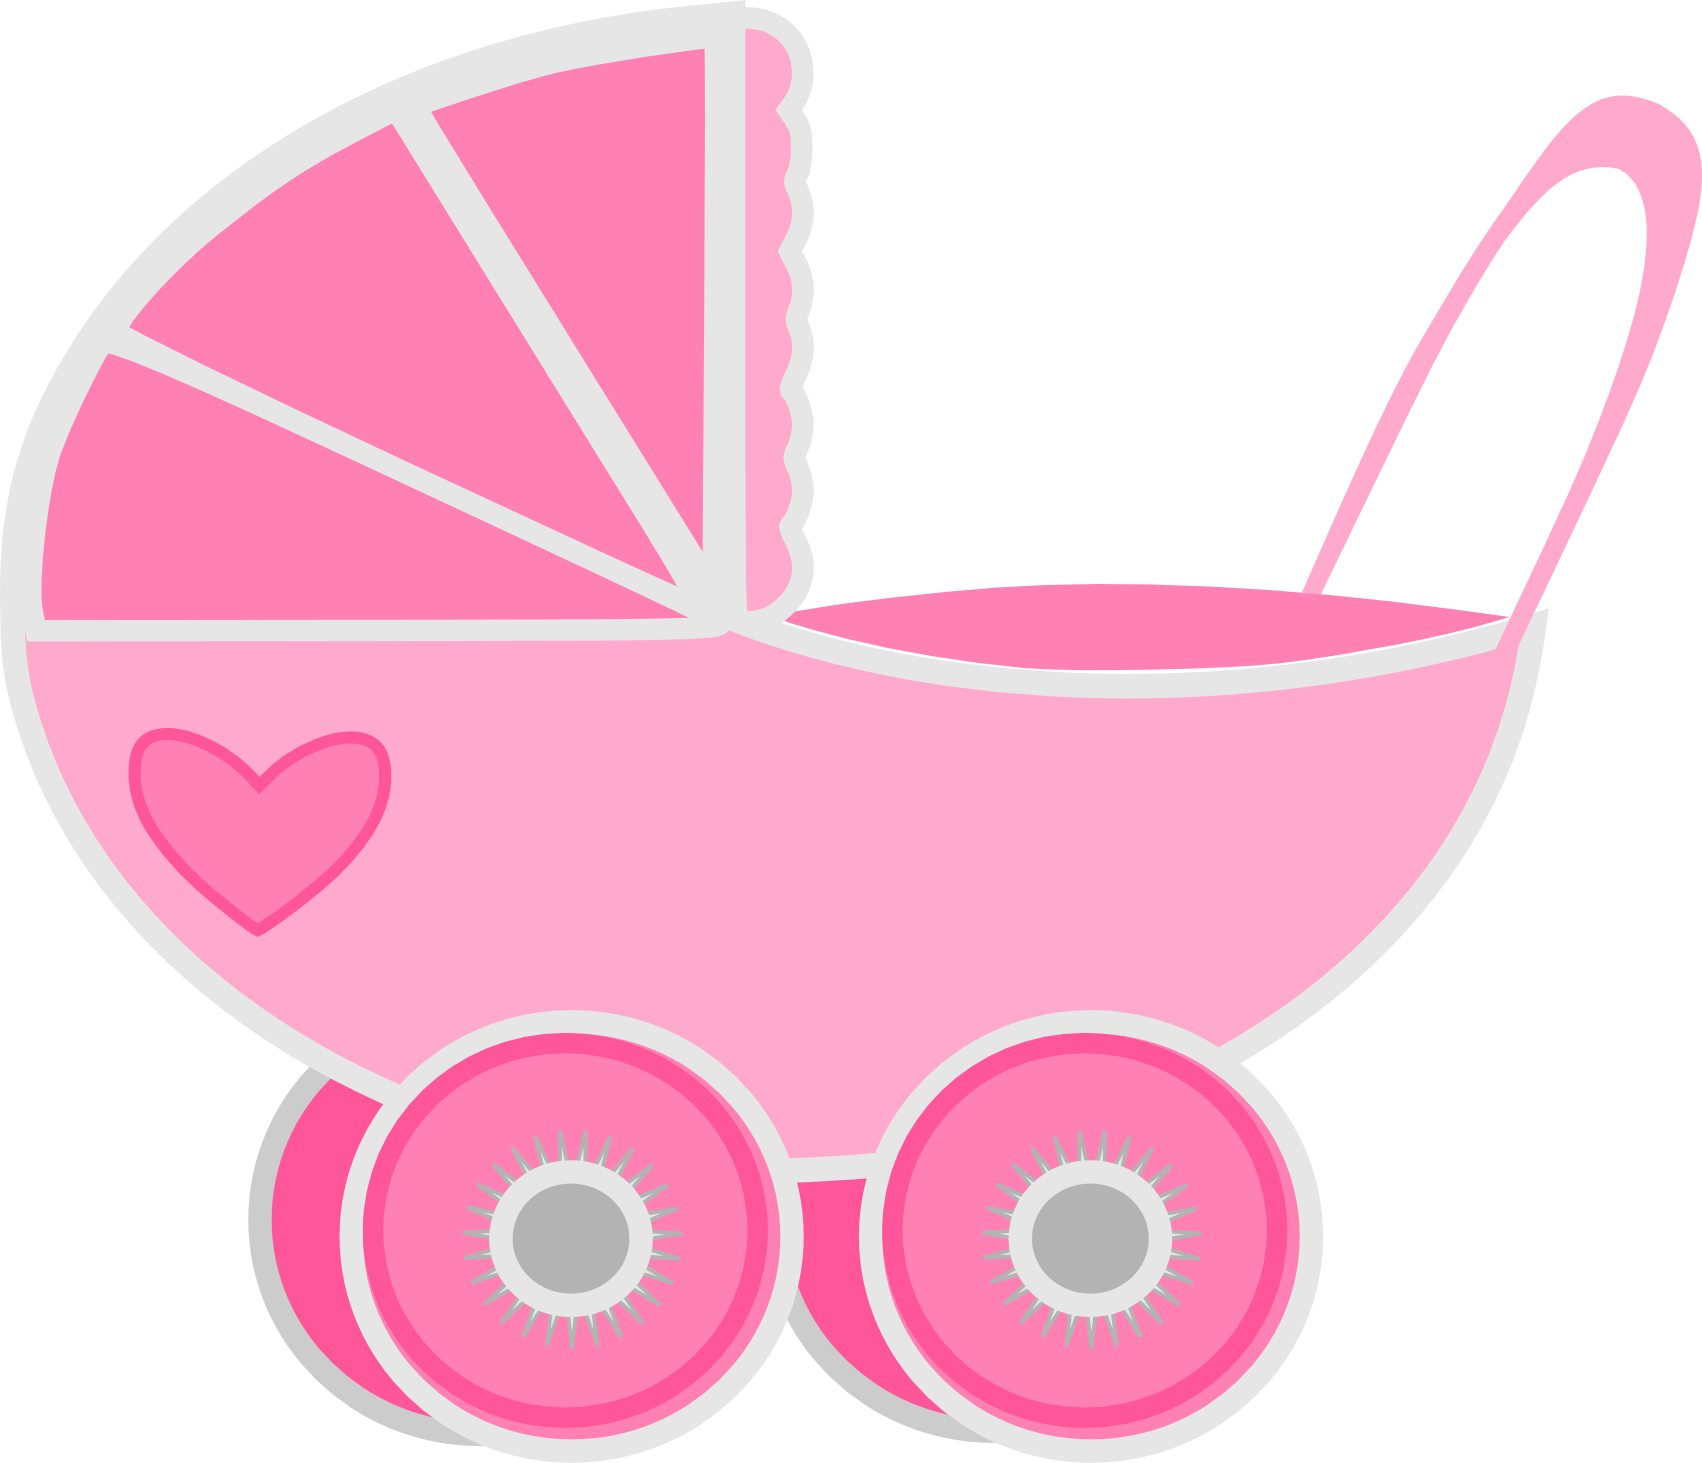 Baby girl pink clipart banner freeuse library Mixed Clip-art   Wd   Pinterest   Scrapbooking, Babies and Clip art banner freeuse library